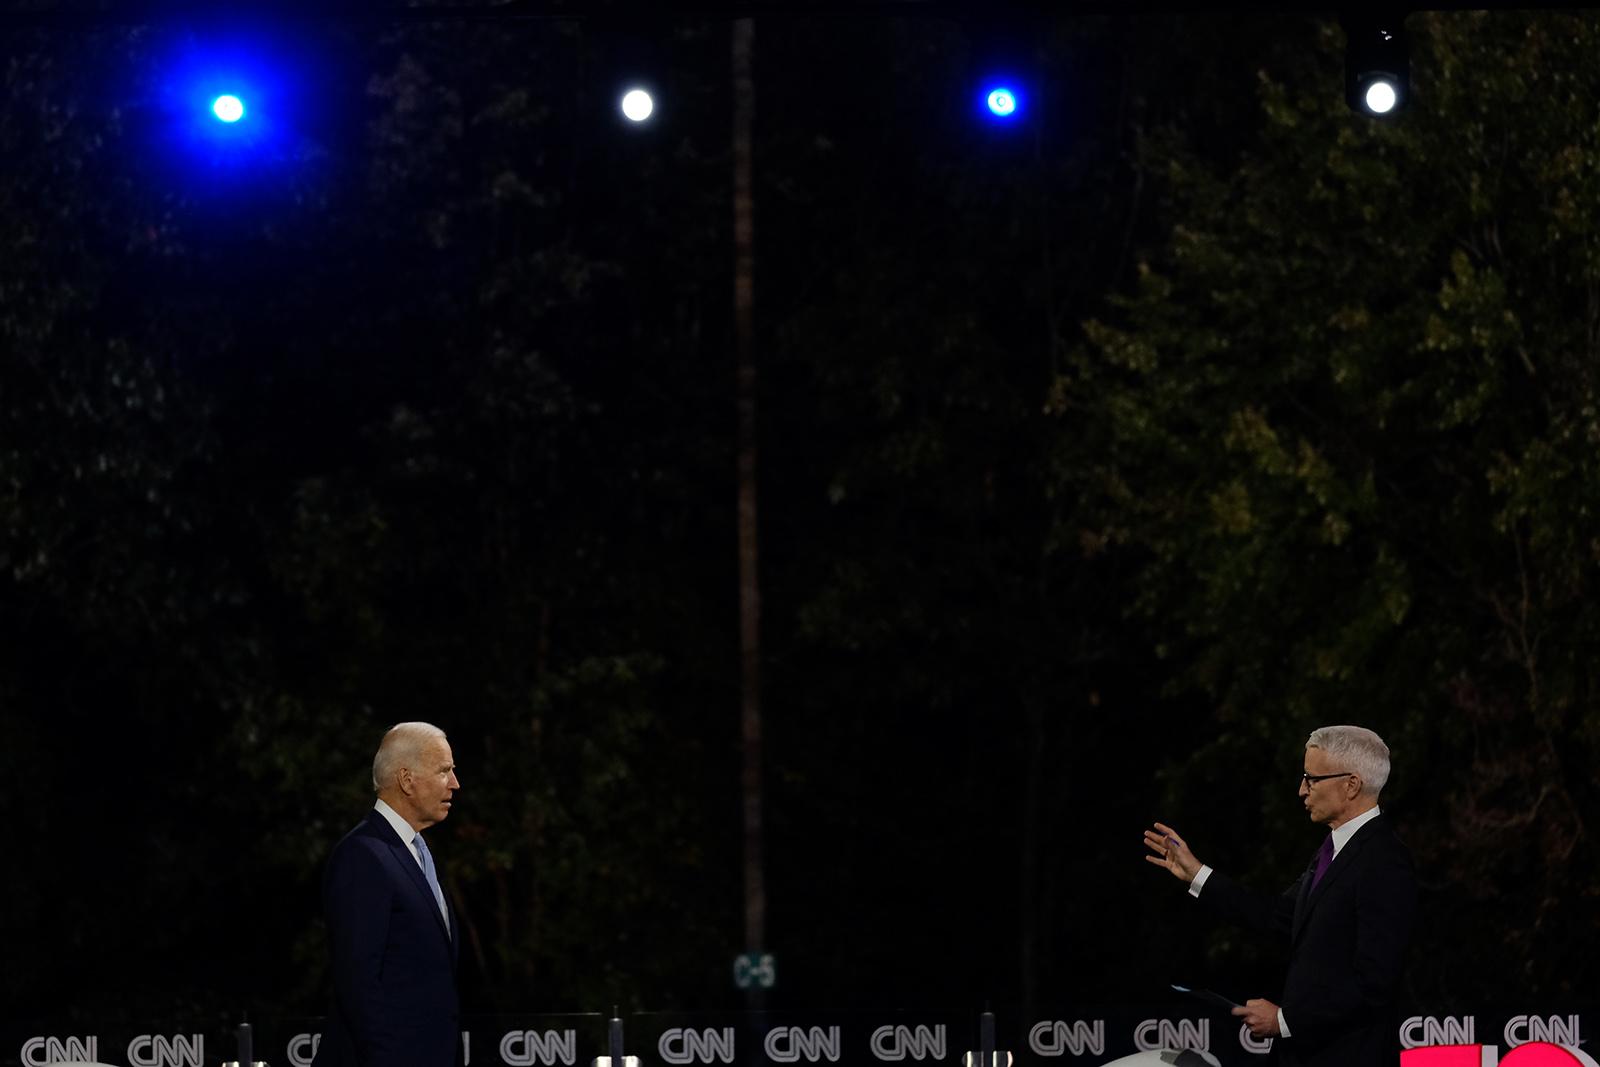 Democratic presidential nominee Joe Biden speaks with CNN's Anderson Cooper at the CNN Presidential Town Hall in Scranton, Pennsylvania, on Thursday.